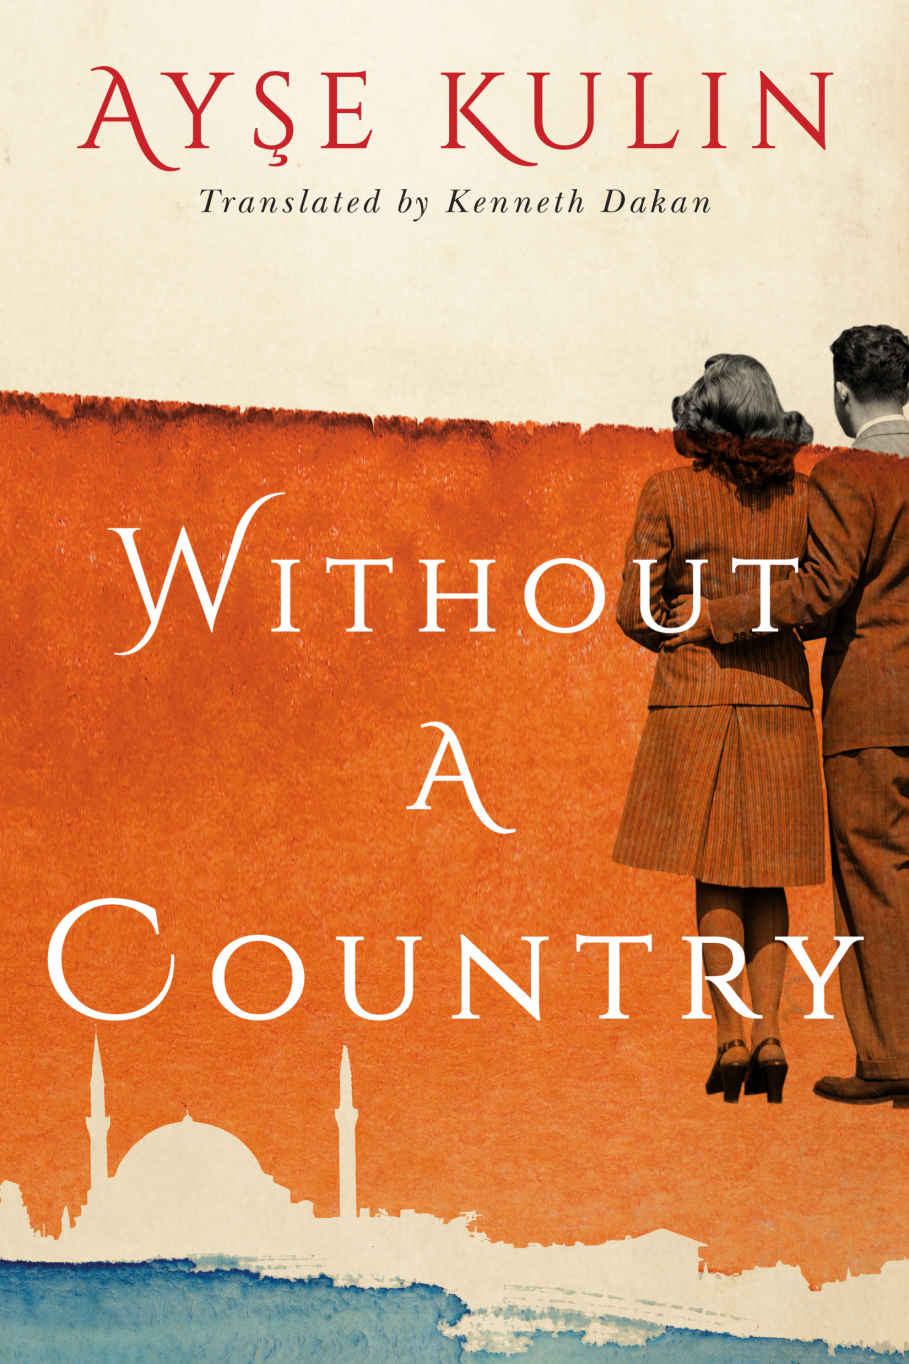 Without a Country - Ayşe Kulin [kindle] [mobi]